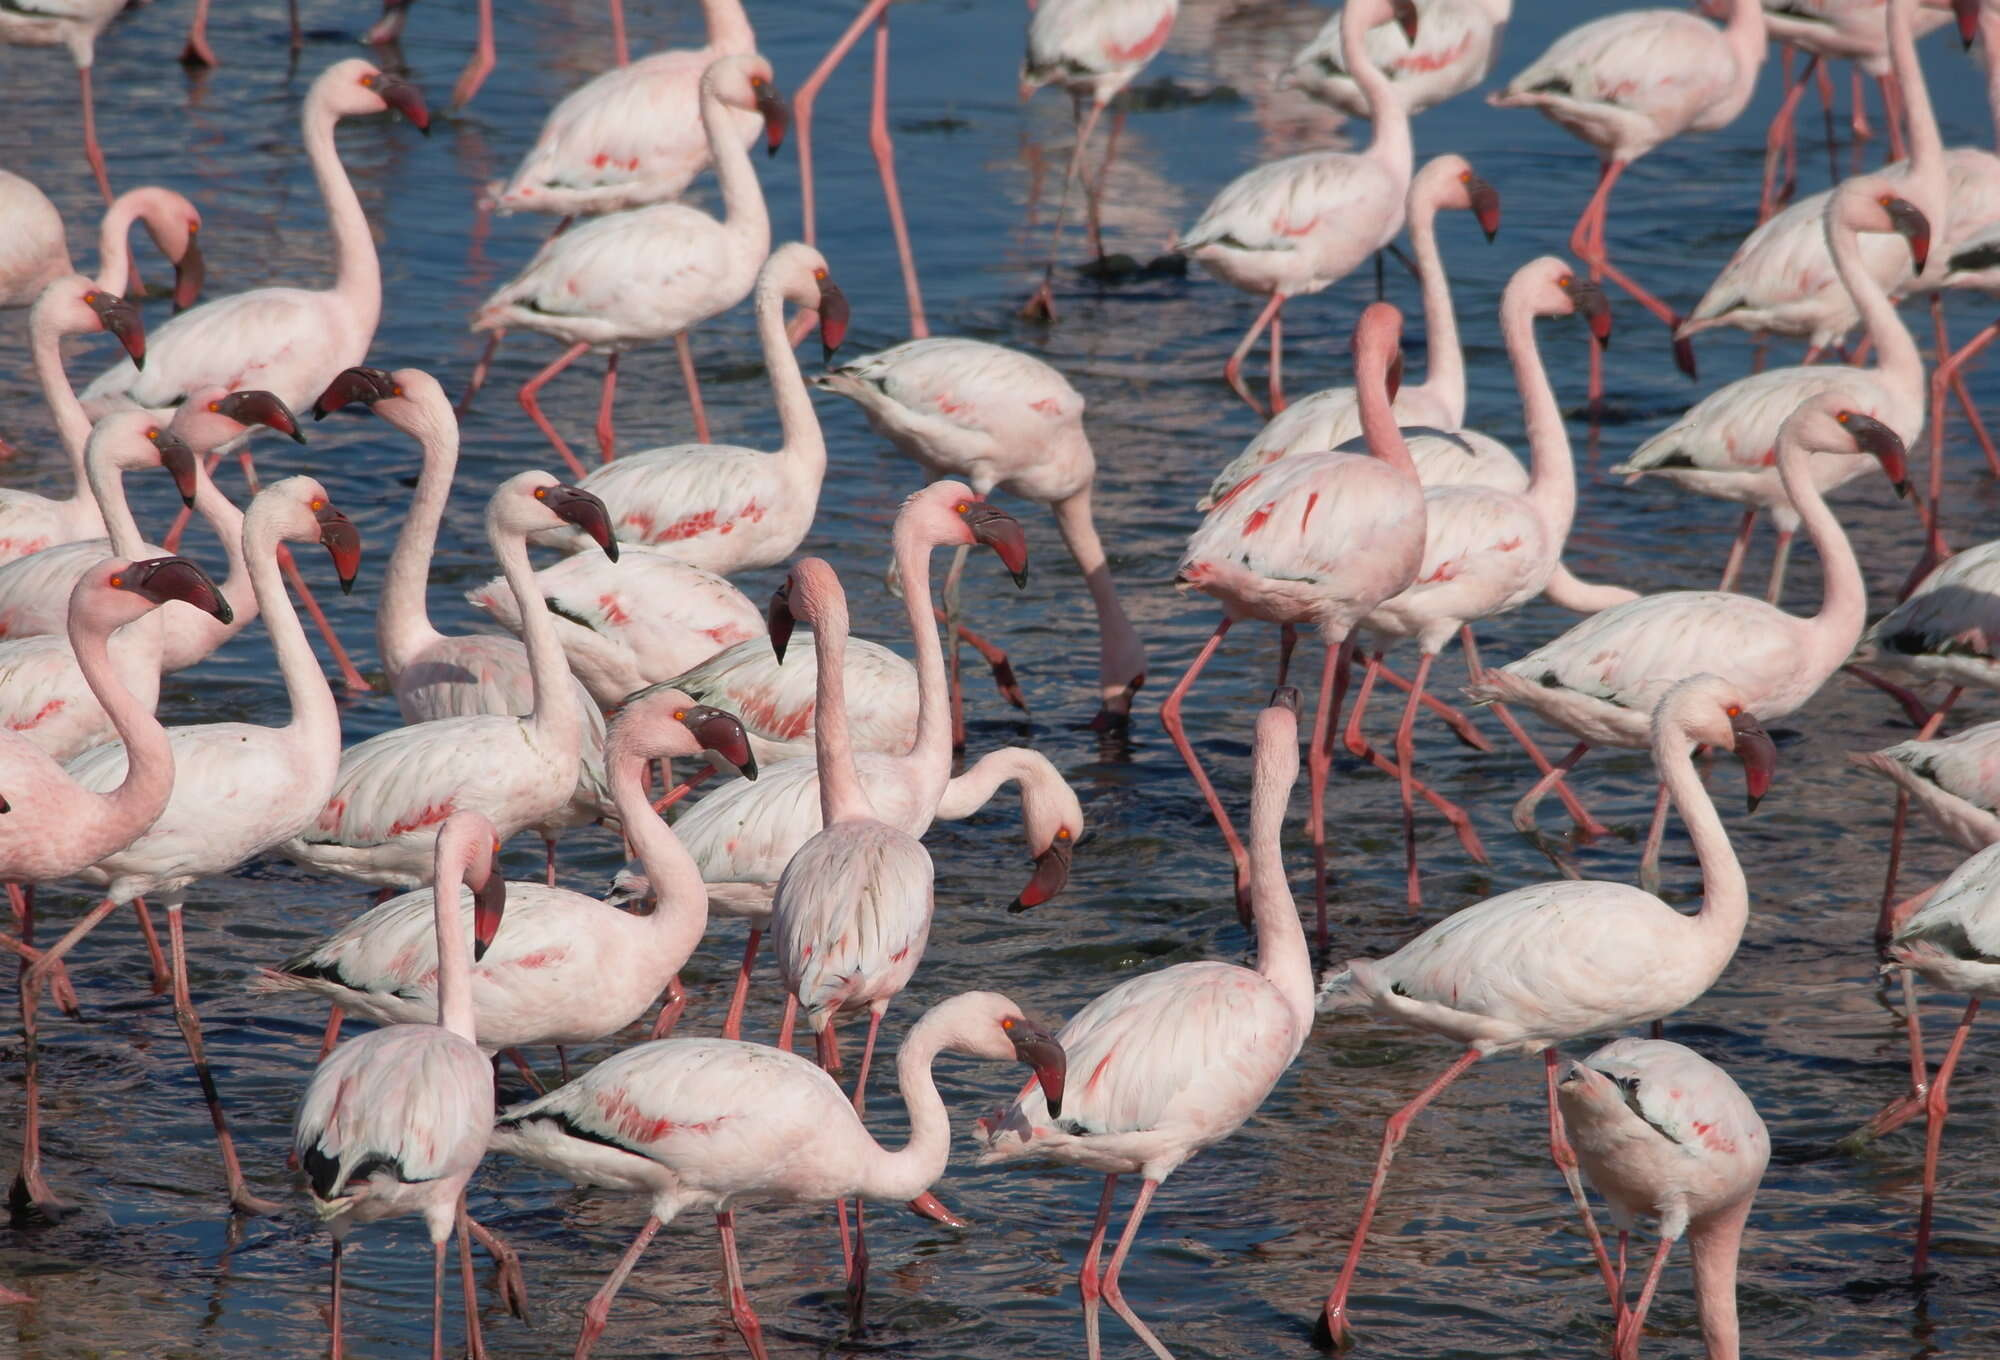 Flamingo fly-in safari to Namibia including, Sossusvlei, Etosha National Park and Okonjima – the AfriCat Foundation.